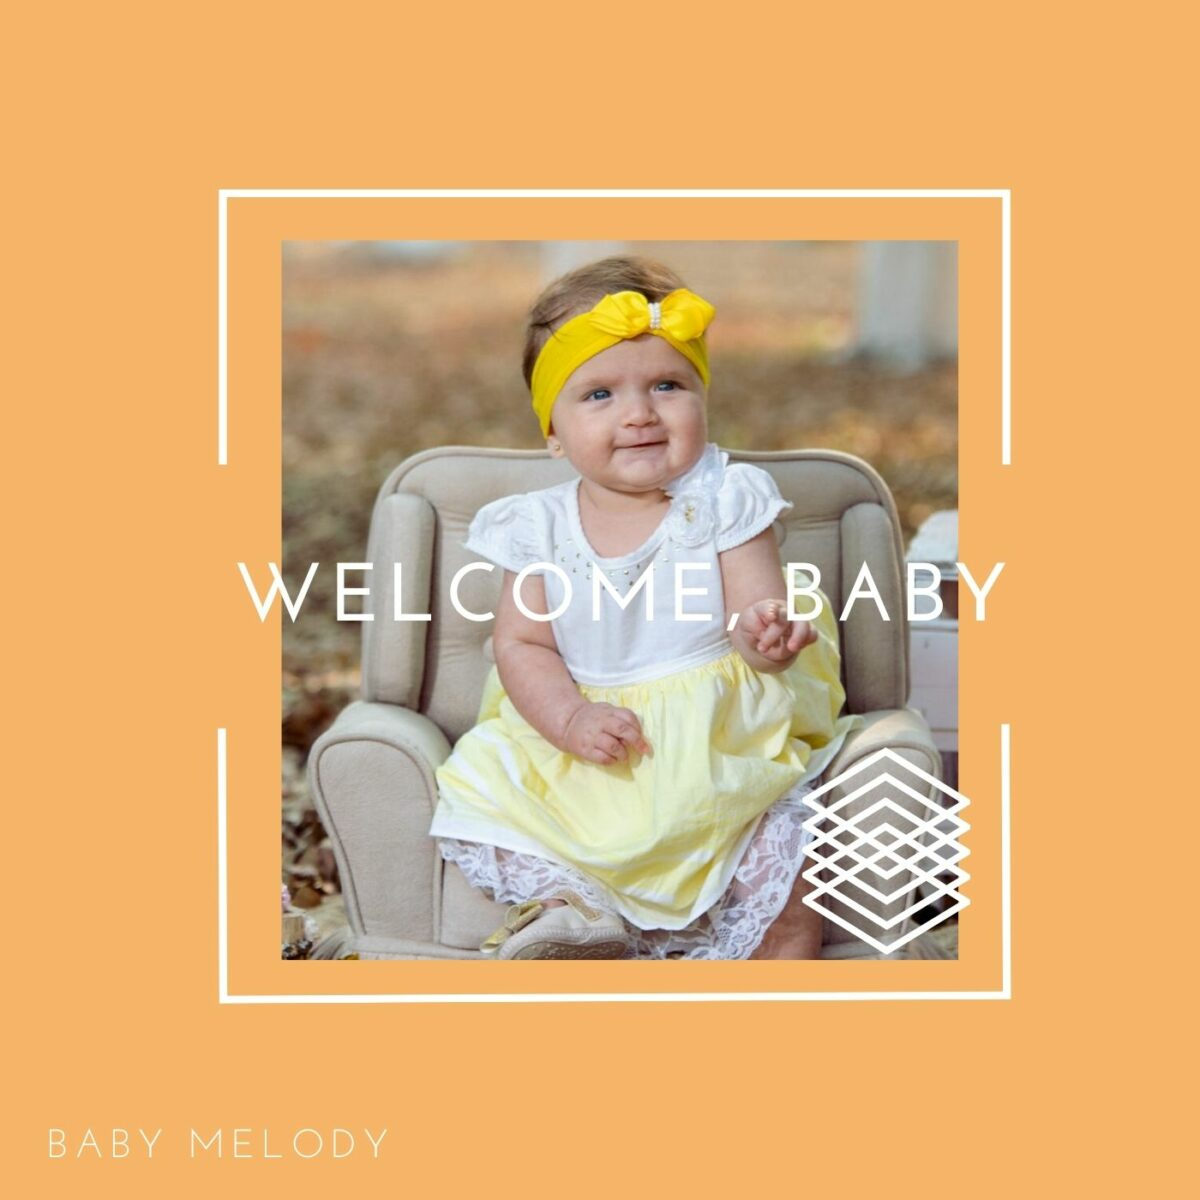 Welcome, Baby Artwork